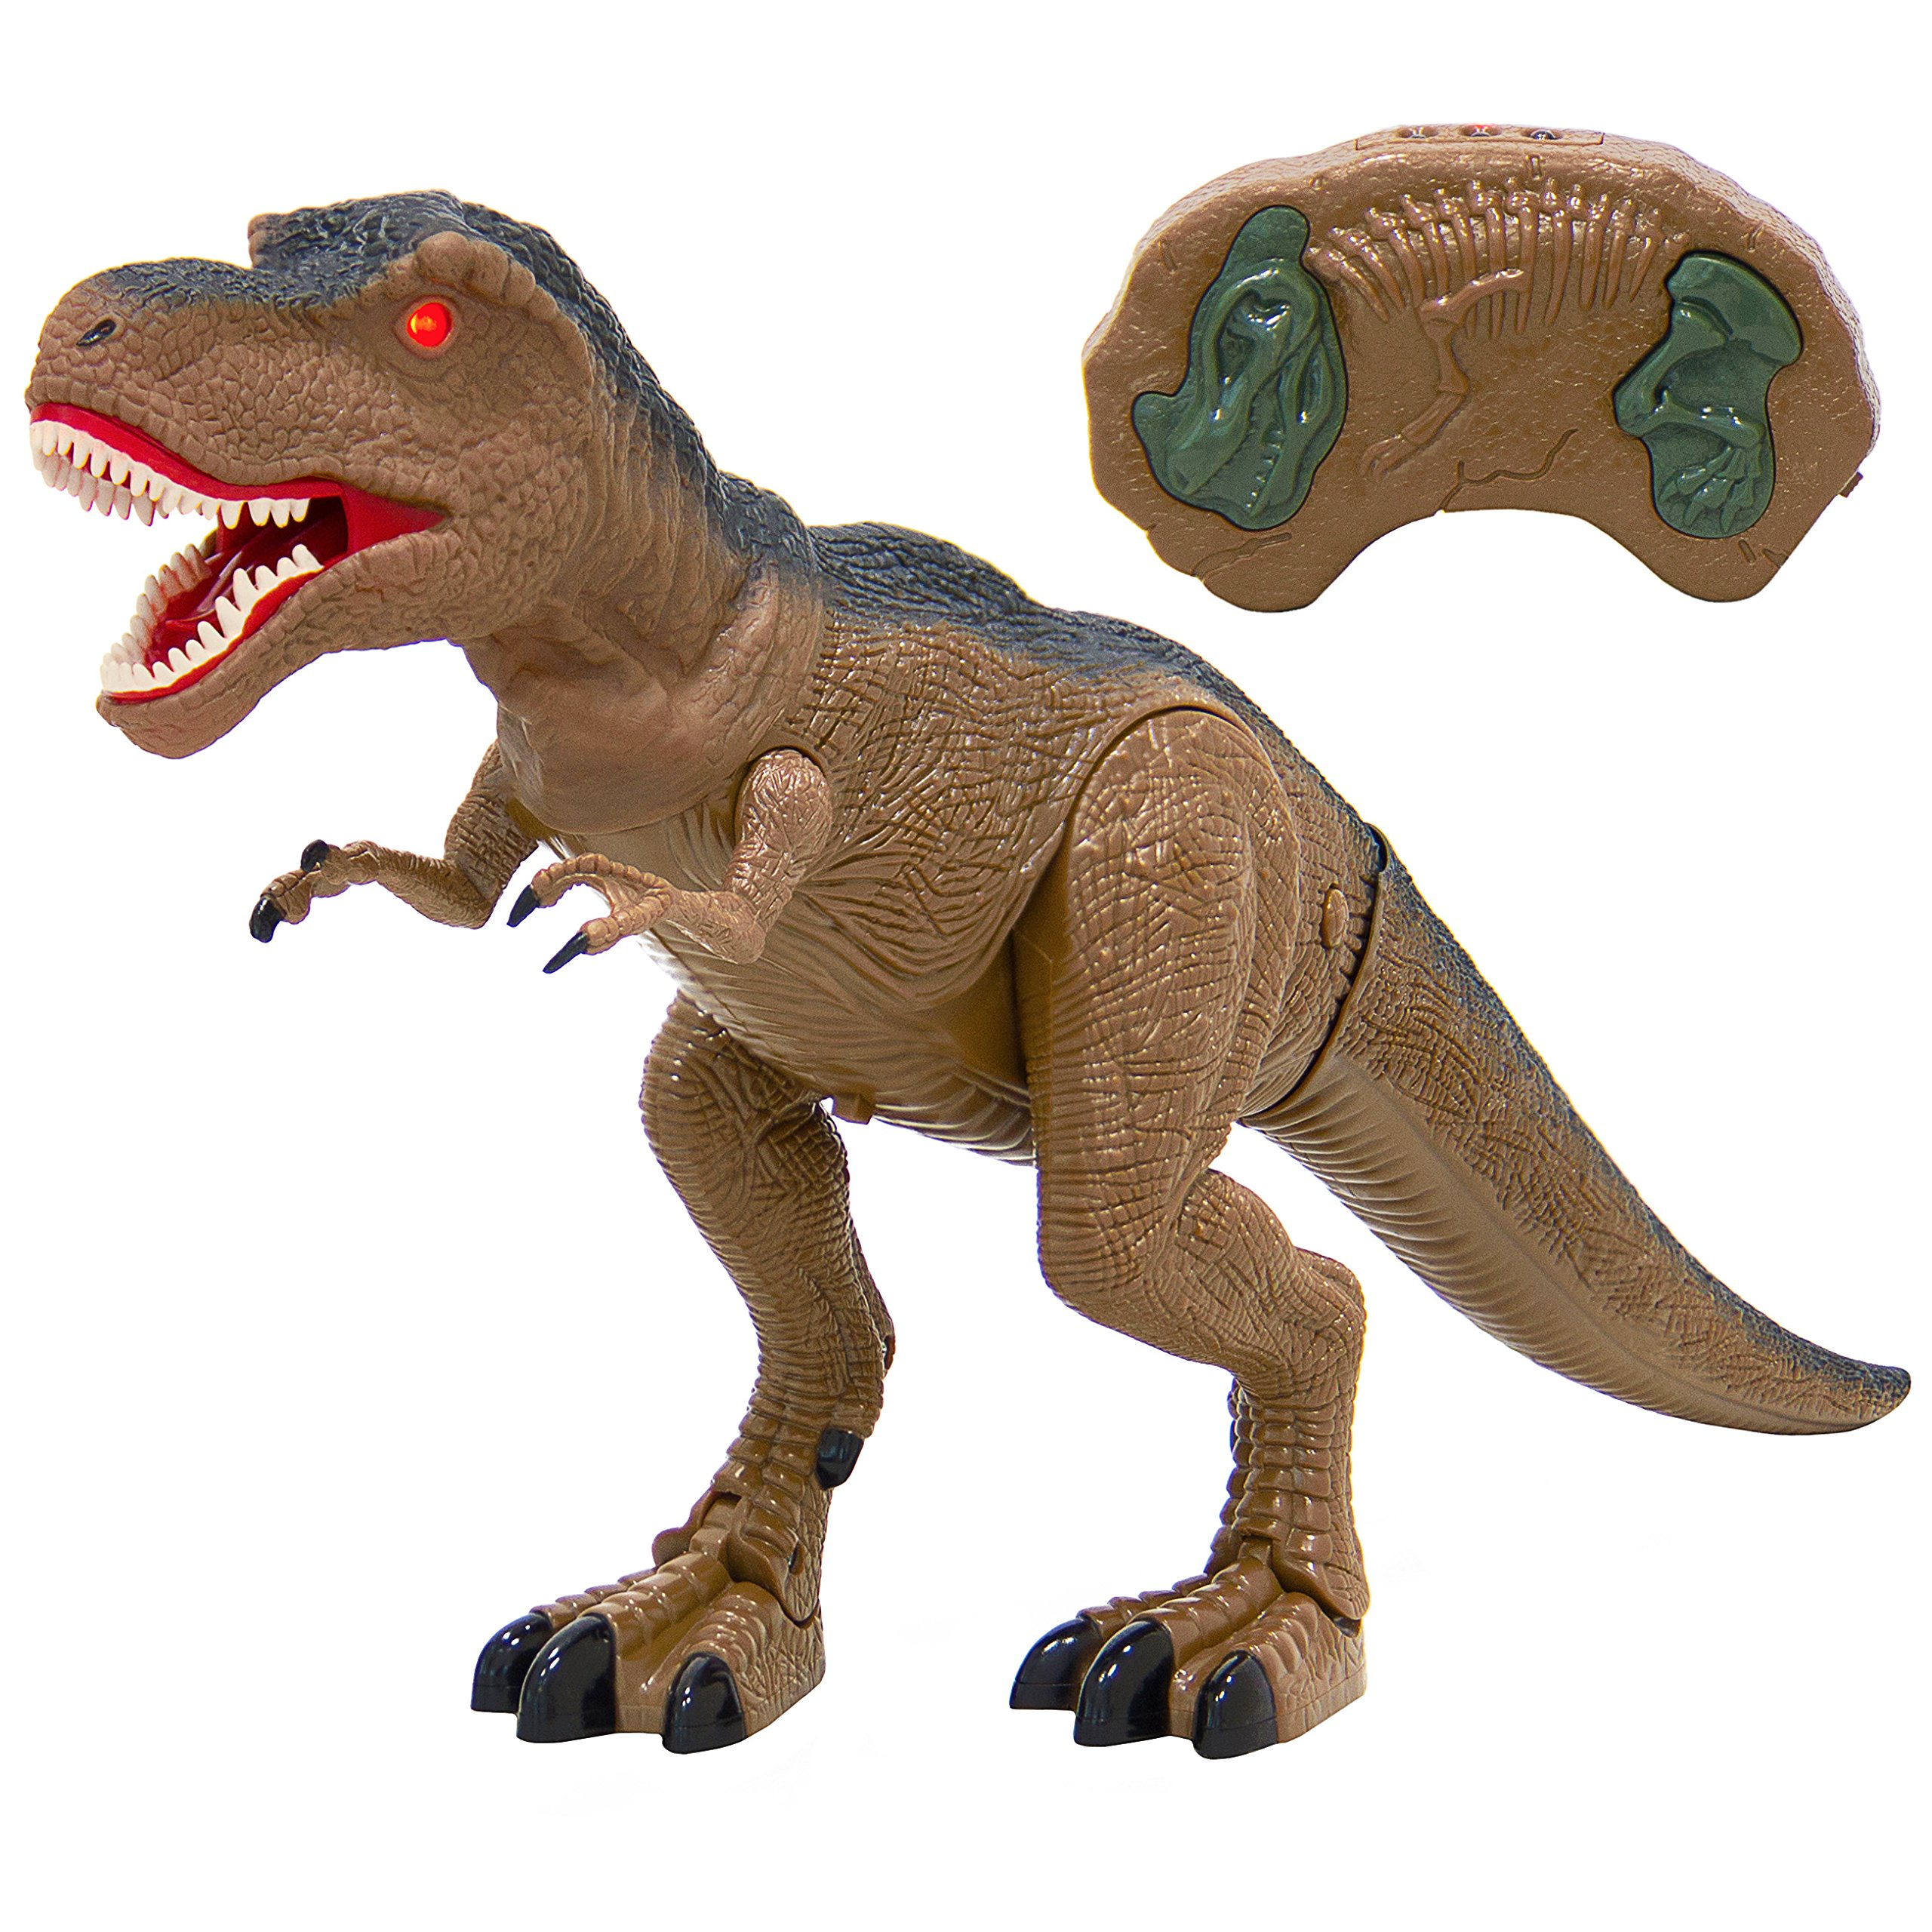 Best Choice Products 19in Kids Walking Remote Control Tyrannosaurus Rex Dinosaur RC Toy w/ Light-Up Eyes, Sounds by Best Choice Products (Image #1)